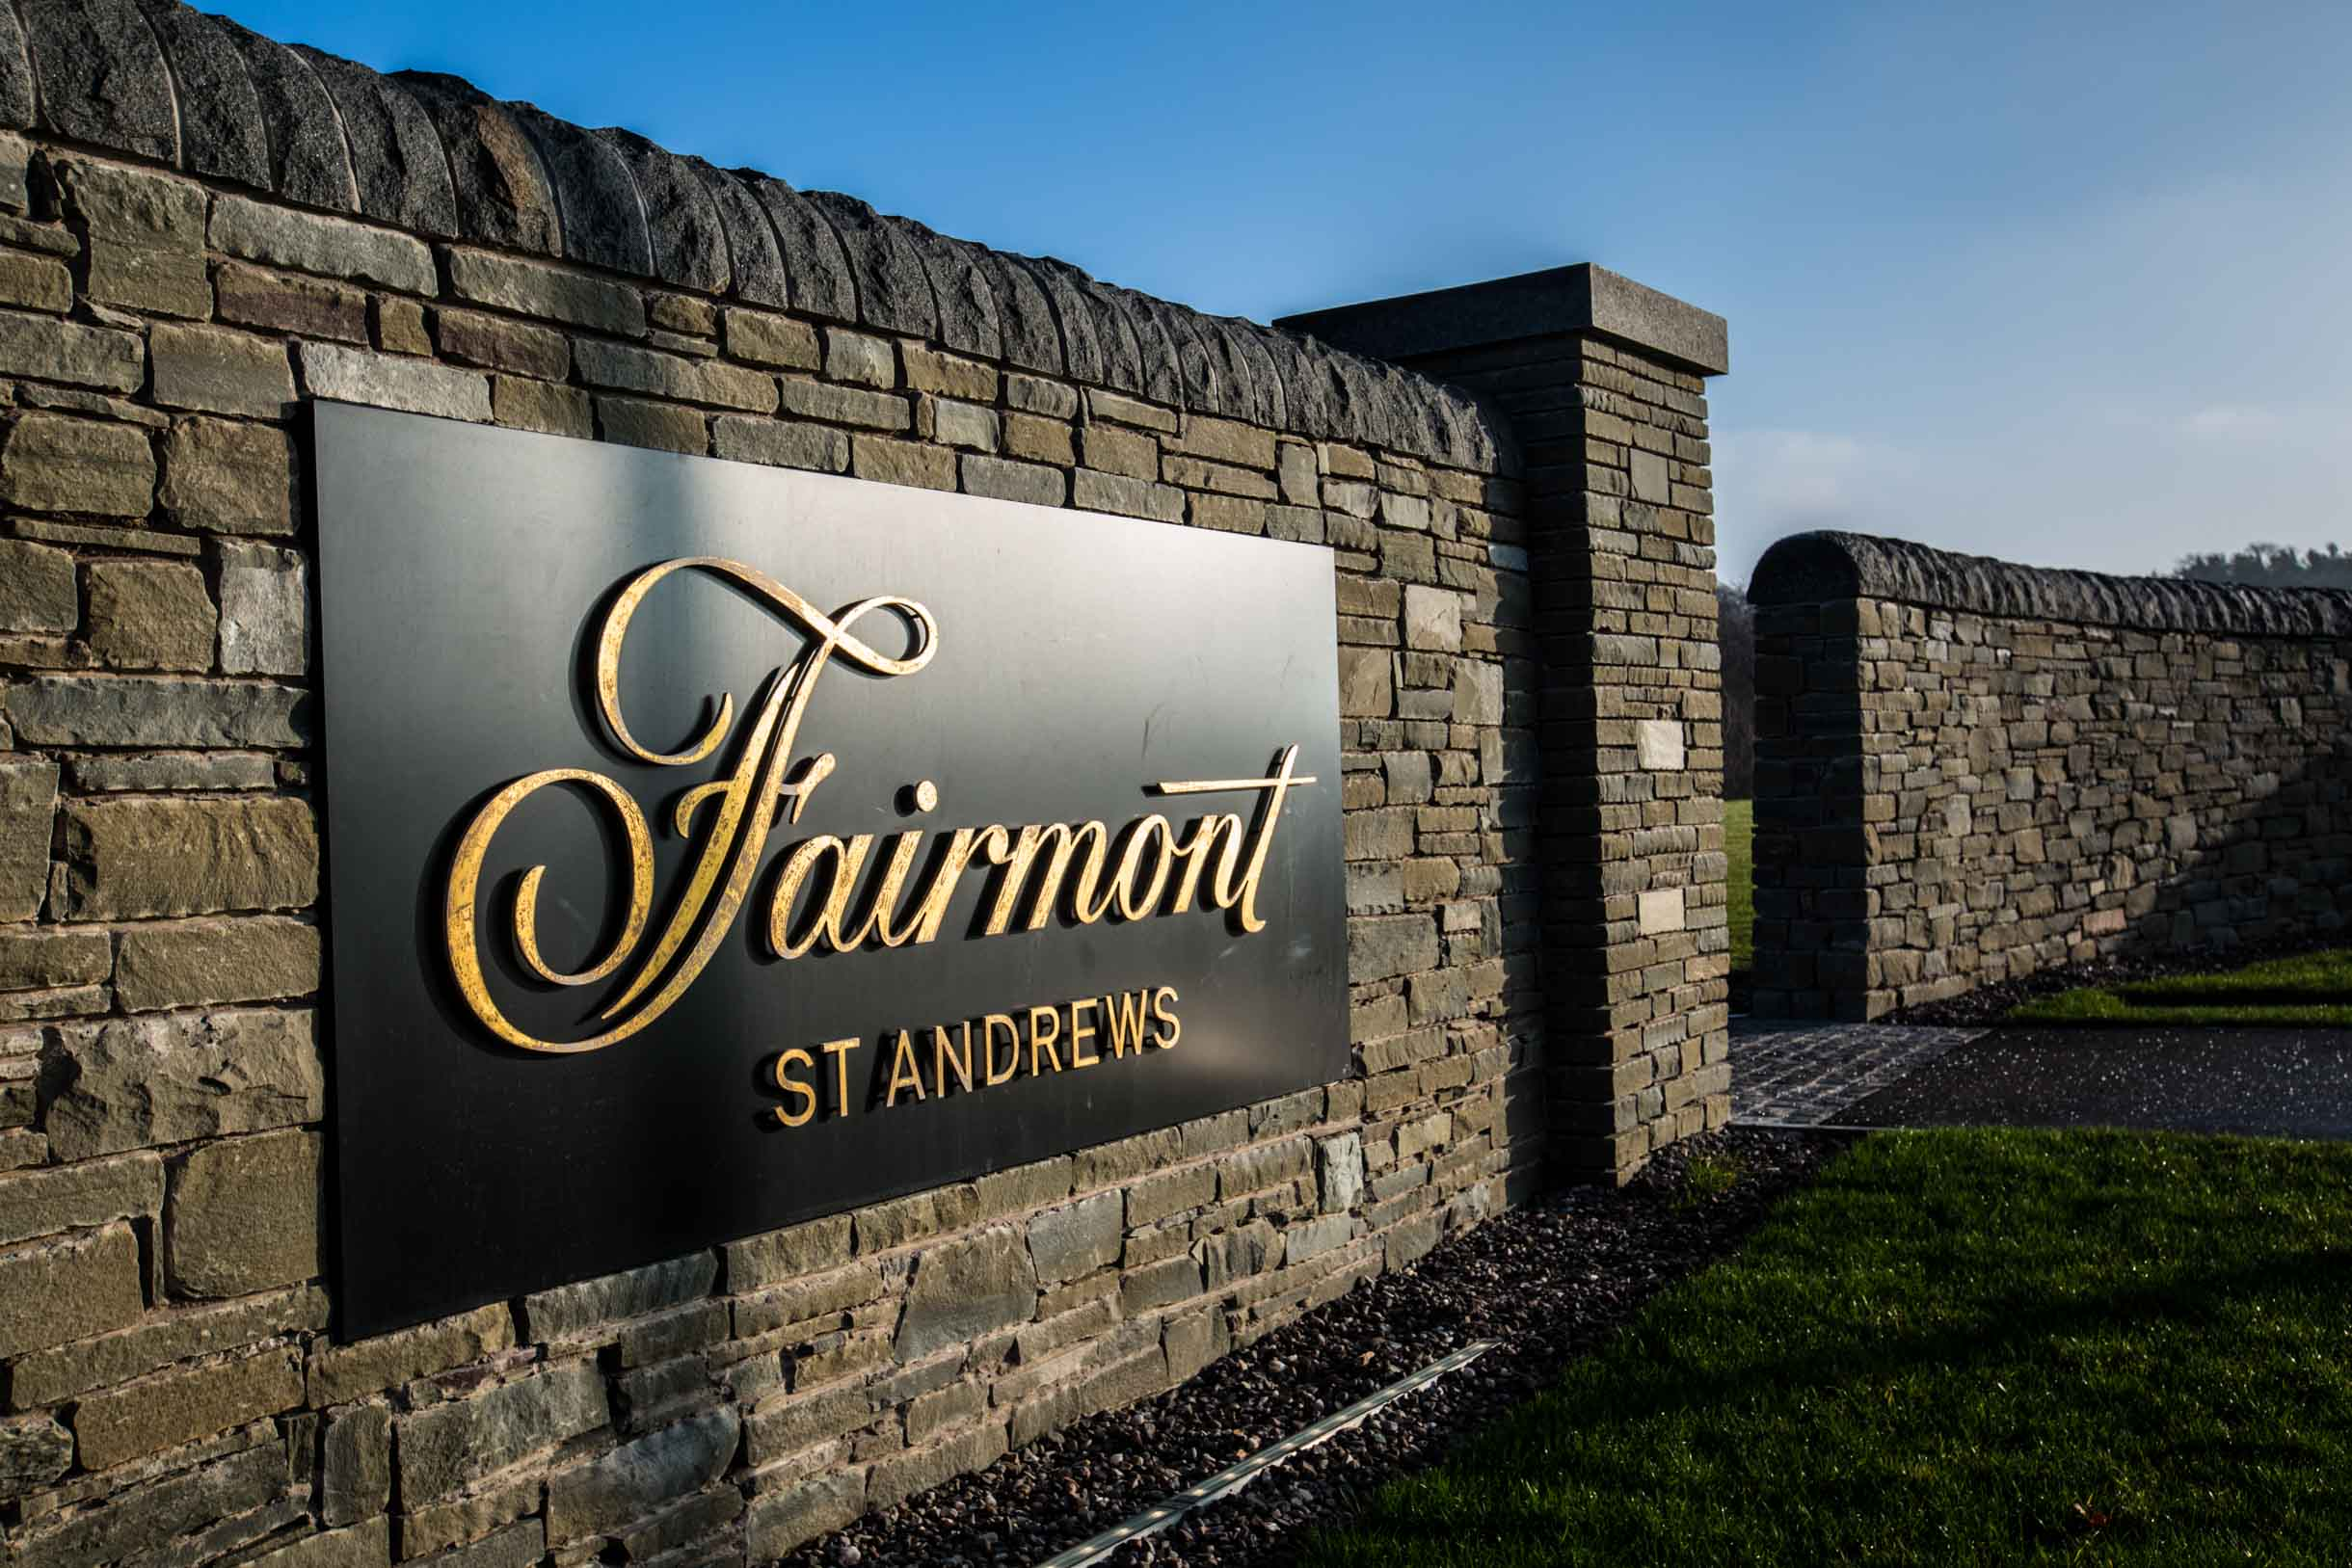 the fairmont St. Andrews sign